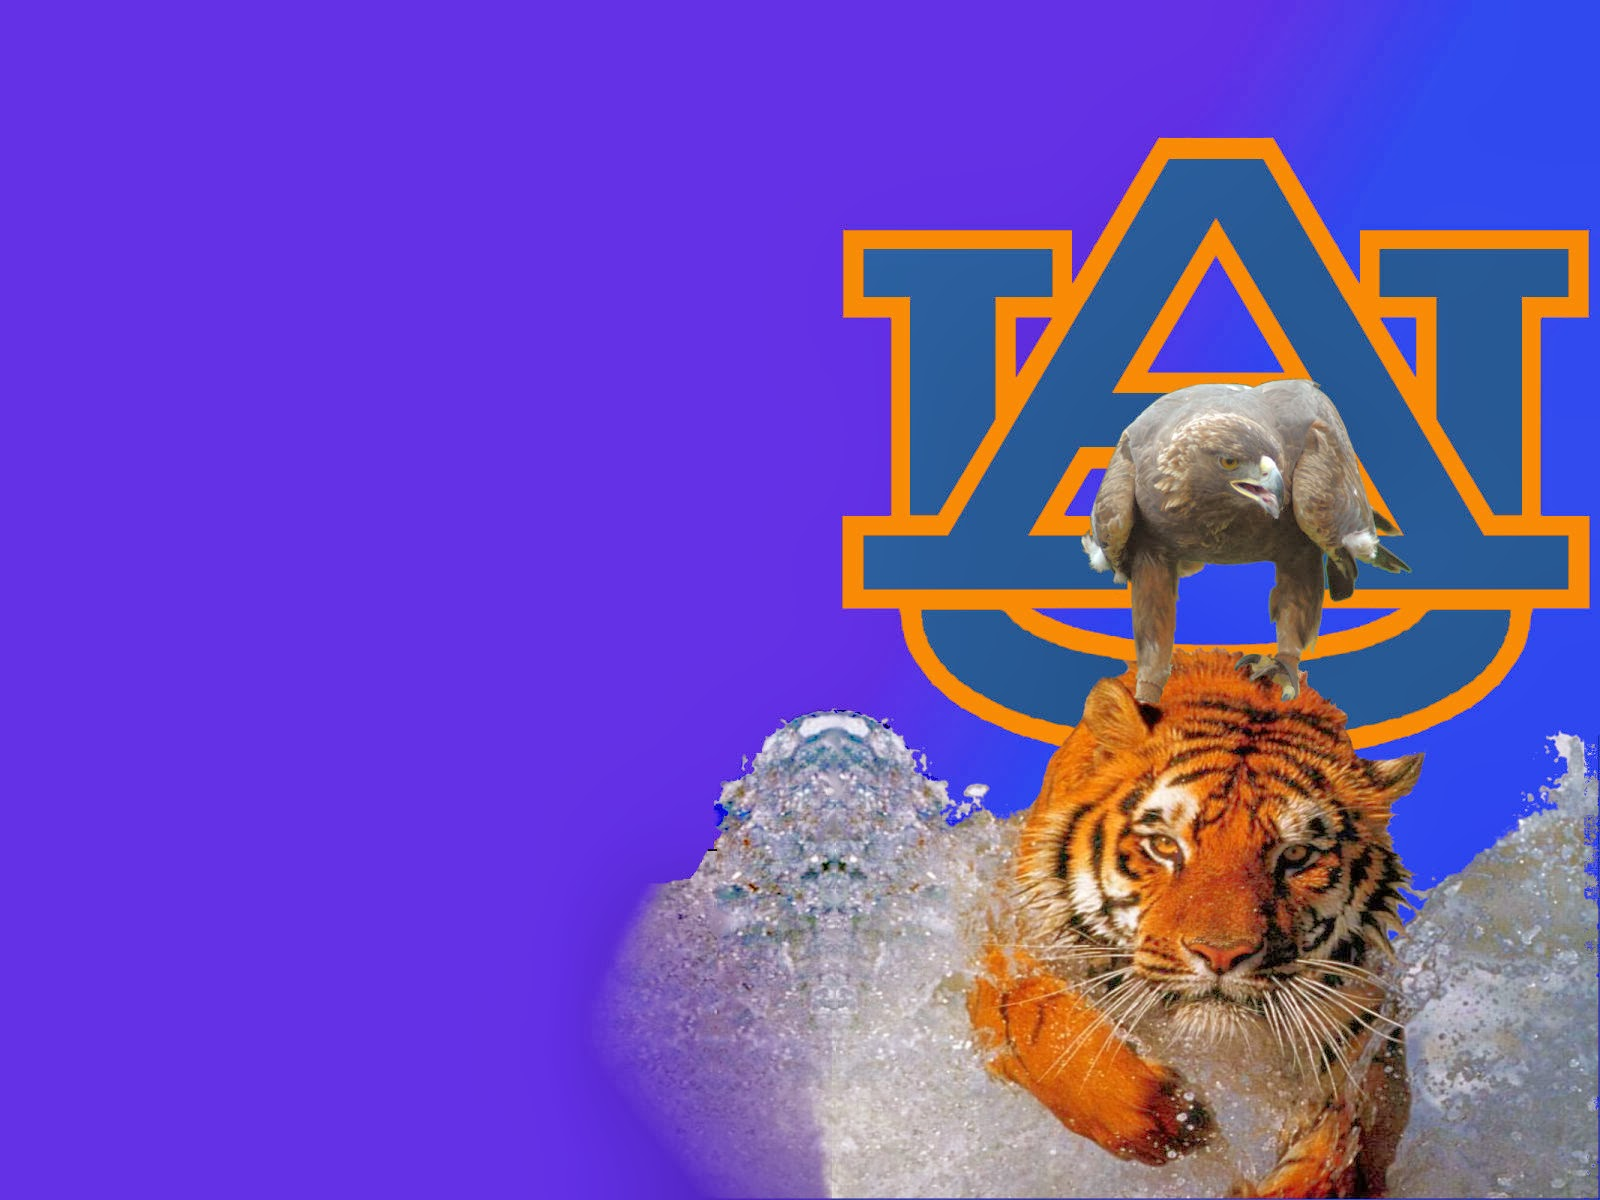 ... wallpaper and make this Auburn football wallpaper for your desktop